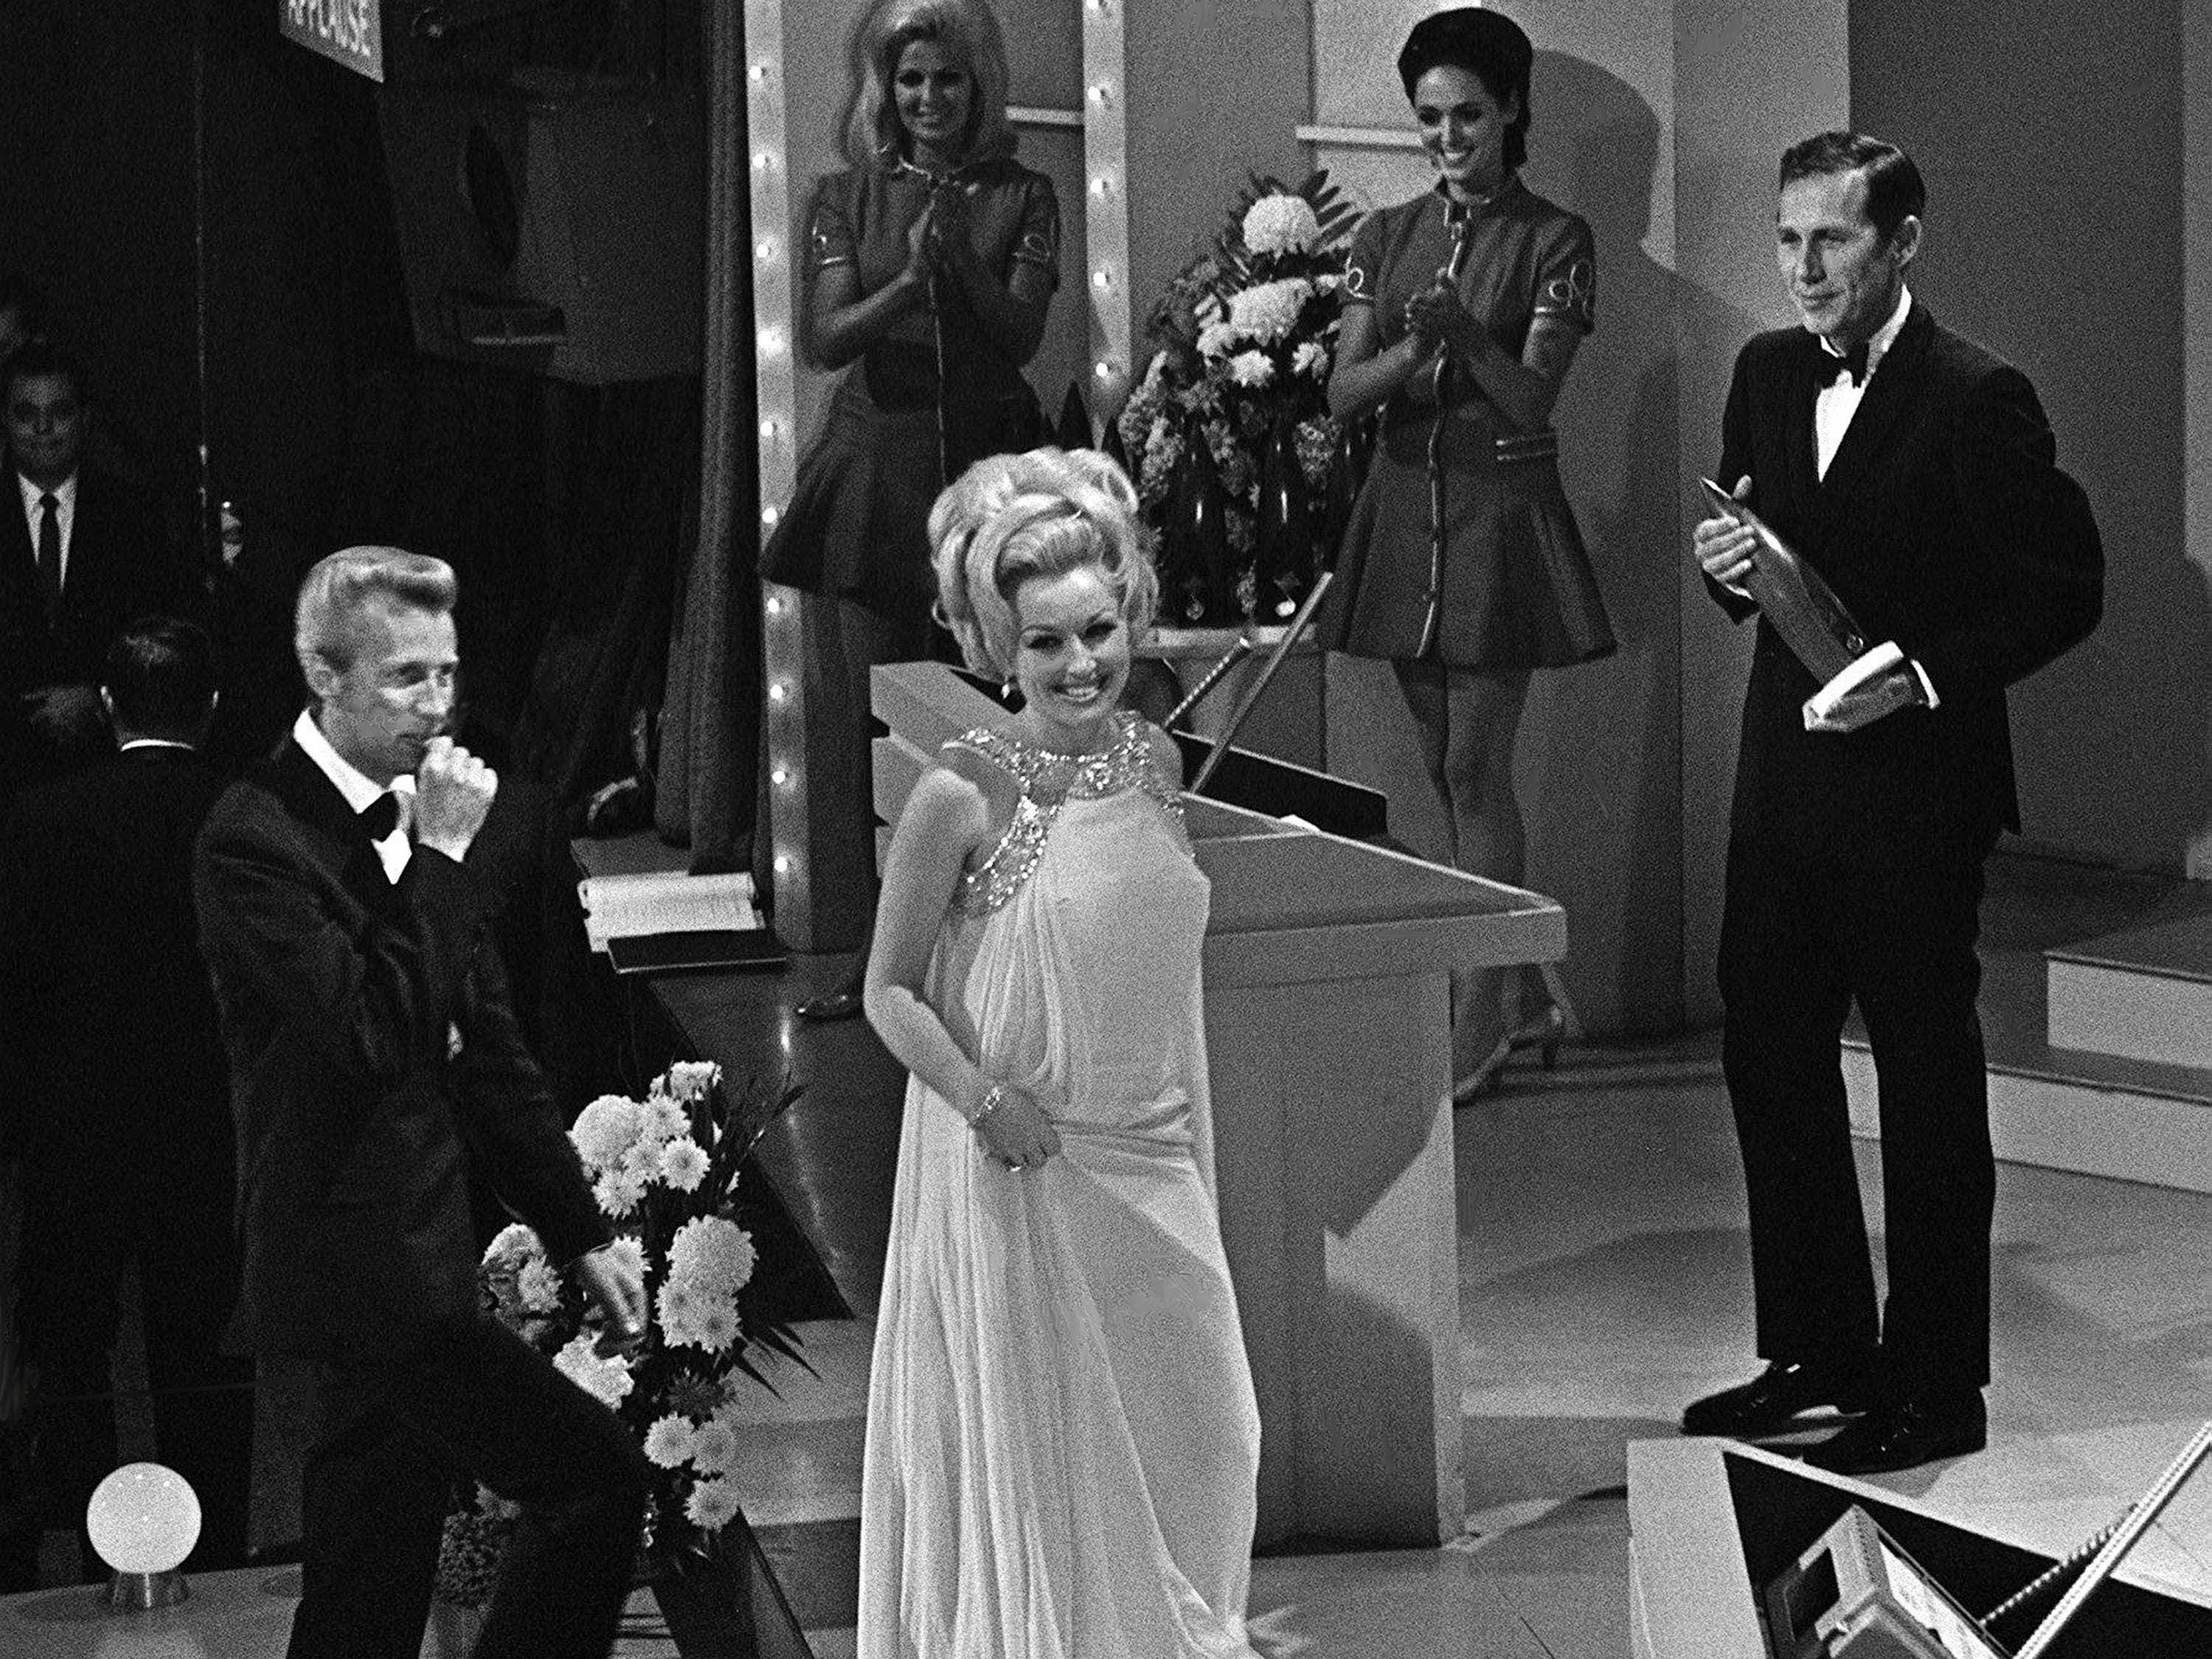 Porter Wagoner, left, and Dolly Parton walk on stage to accept their Vocal Group of the Year award during the second annual CMA Awards show at the Ryman Auditorium on Oct. 18, 1968. Presenter Chet Atkins, right, waits on the duo.